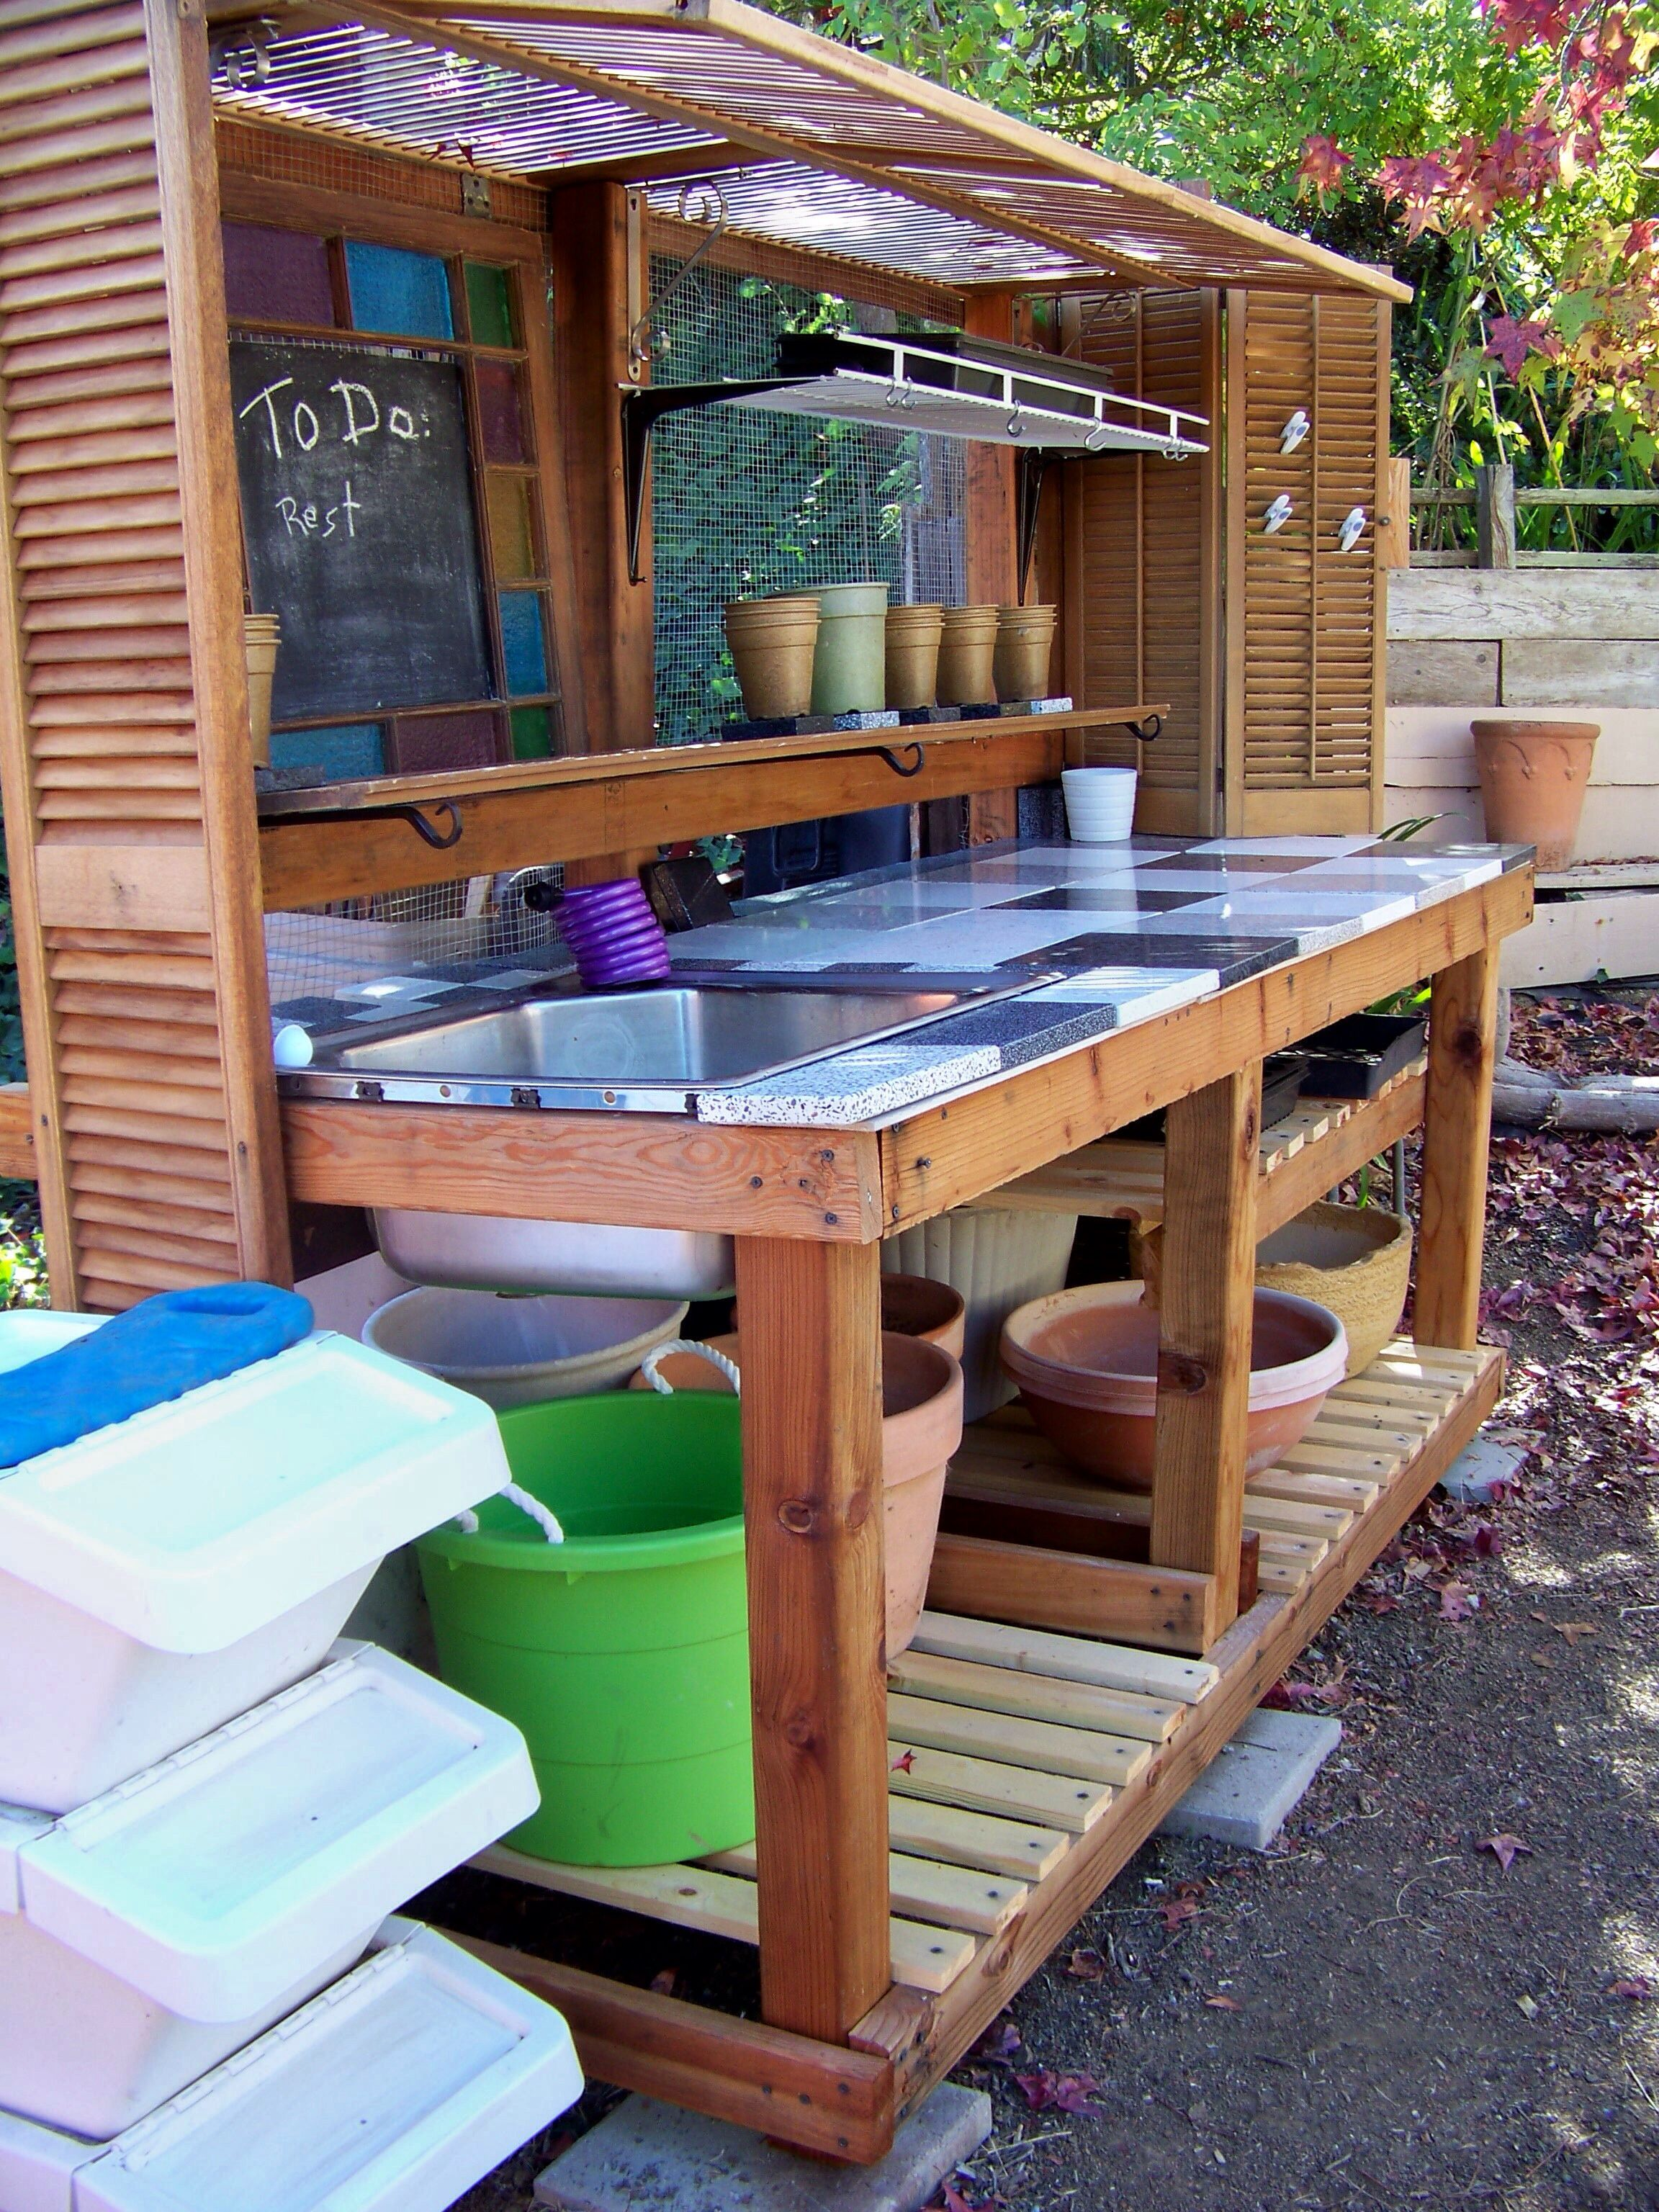 Want To Know How To Build A Potting Bench Our Potting Bench Plan Will Give You A Functional Beautiful Potting Bench Plans Pallet Garden Benches Potting Bench